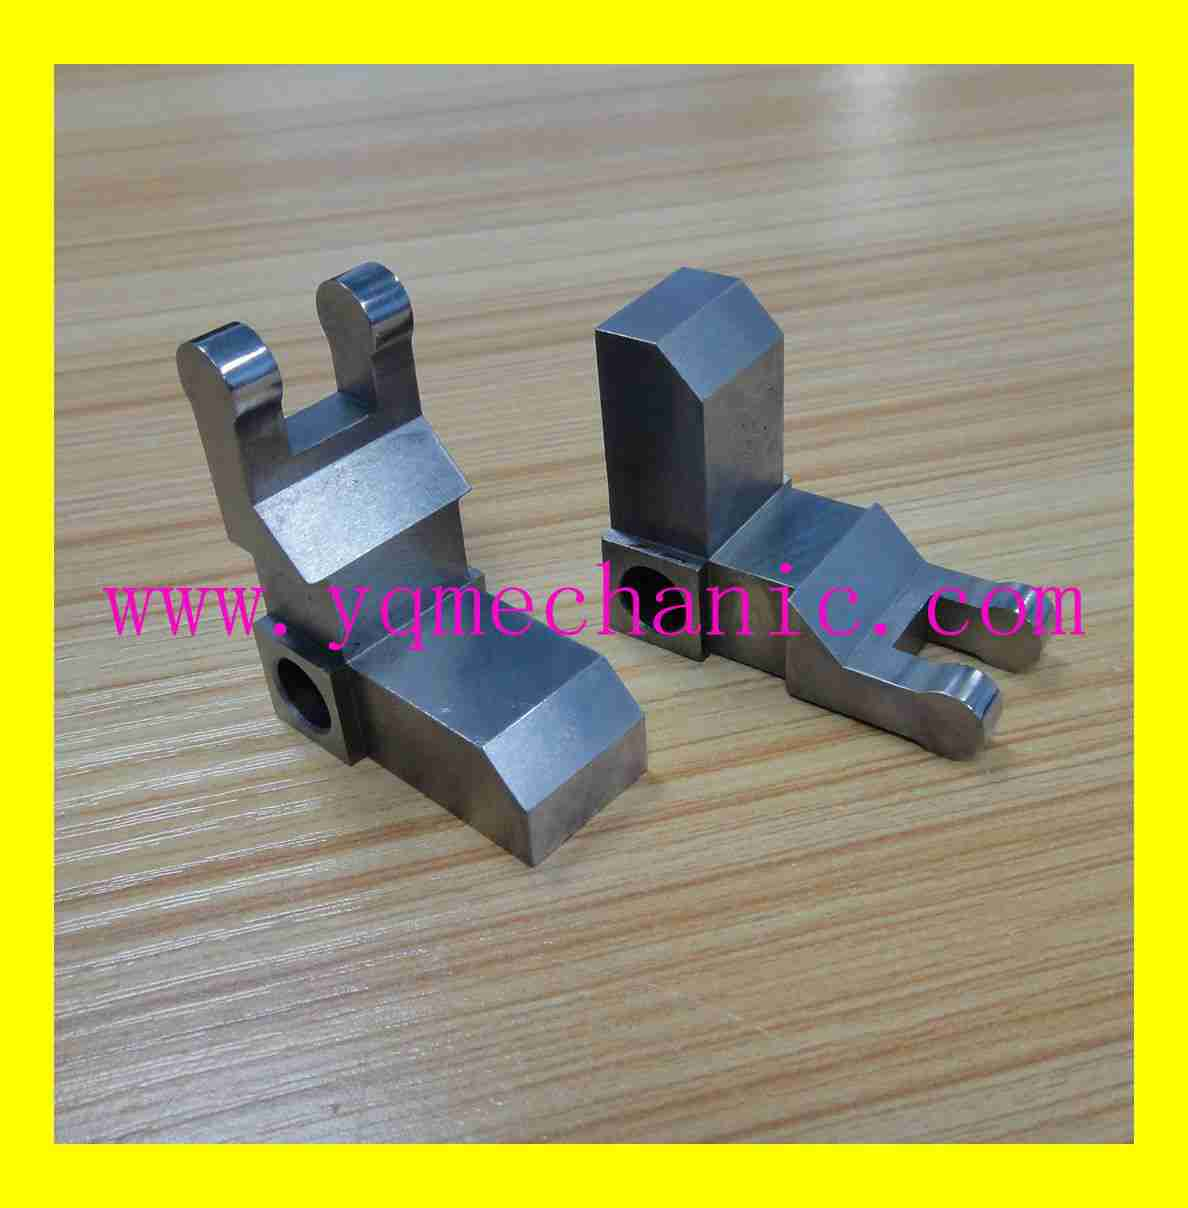 customized precision cnc fixtures parts for medical device